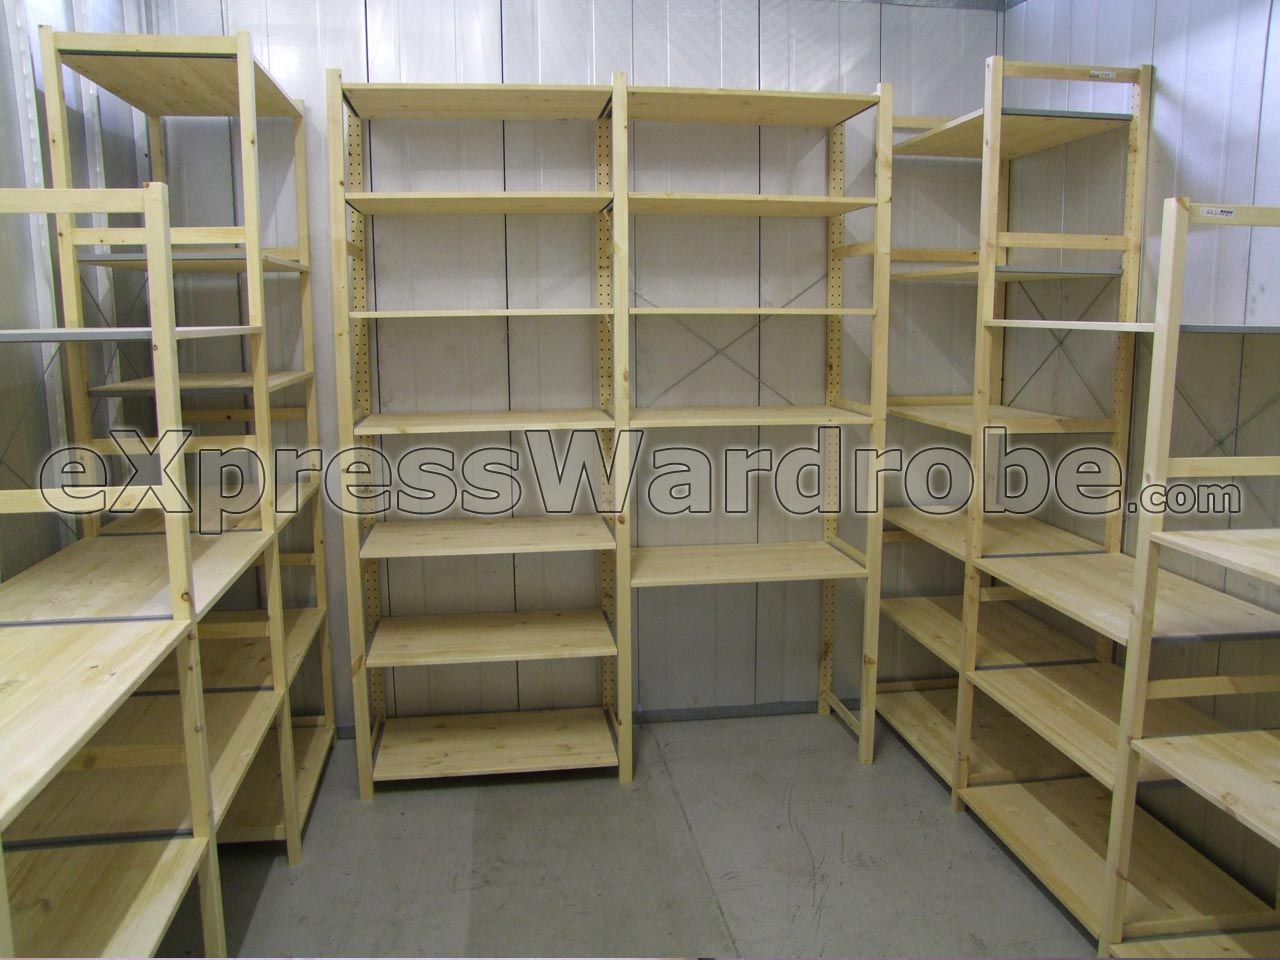 IKEA Ivar Sections Storage Shelves 1280x960